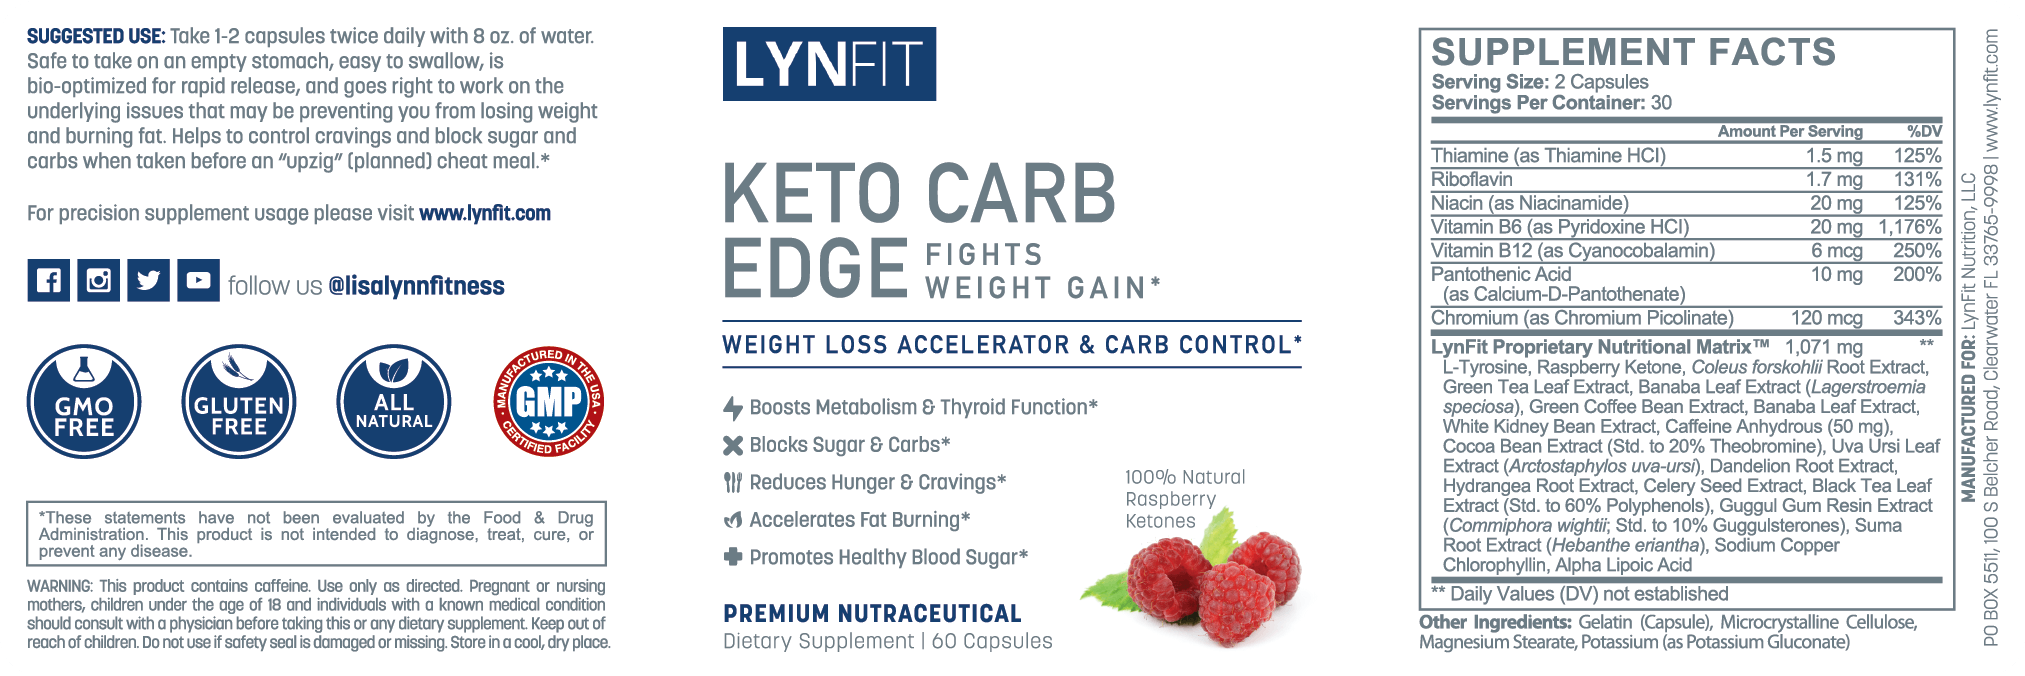 Keto Carb Edge Weight Loss Accelerator